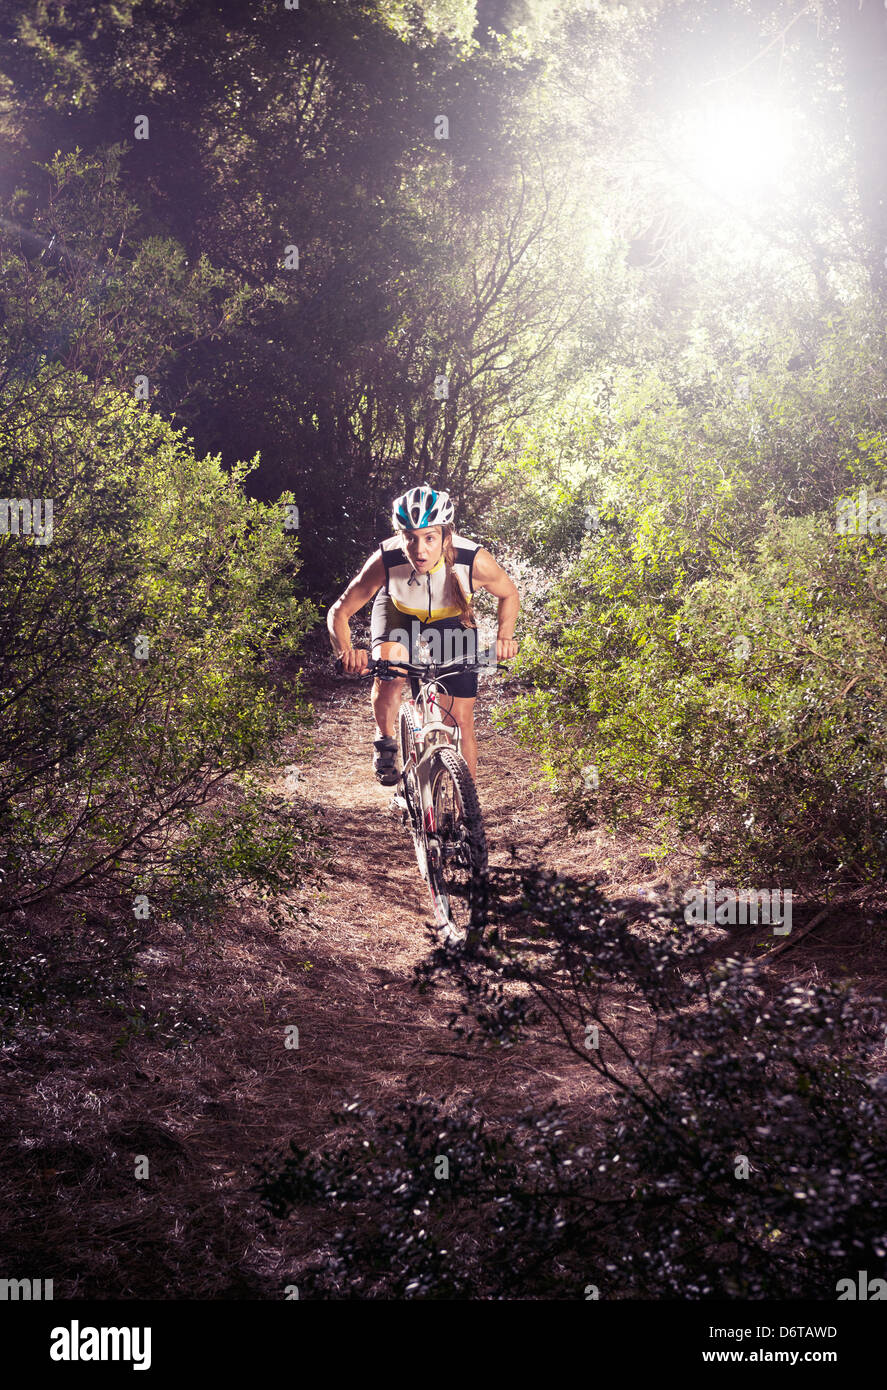 Weibliche Mountainbiker. Stockbild